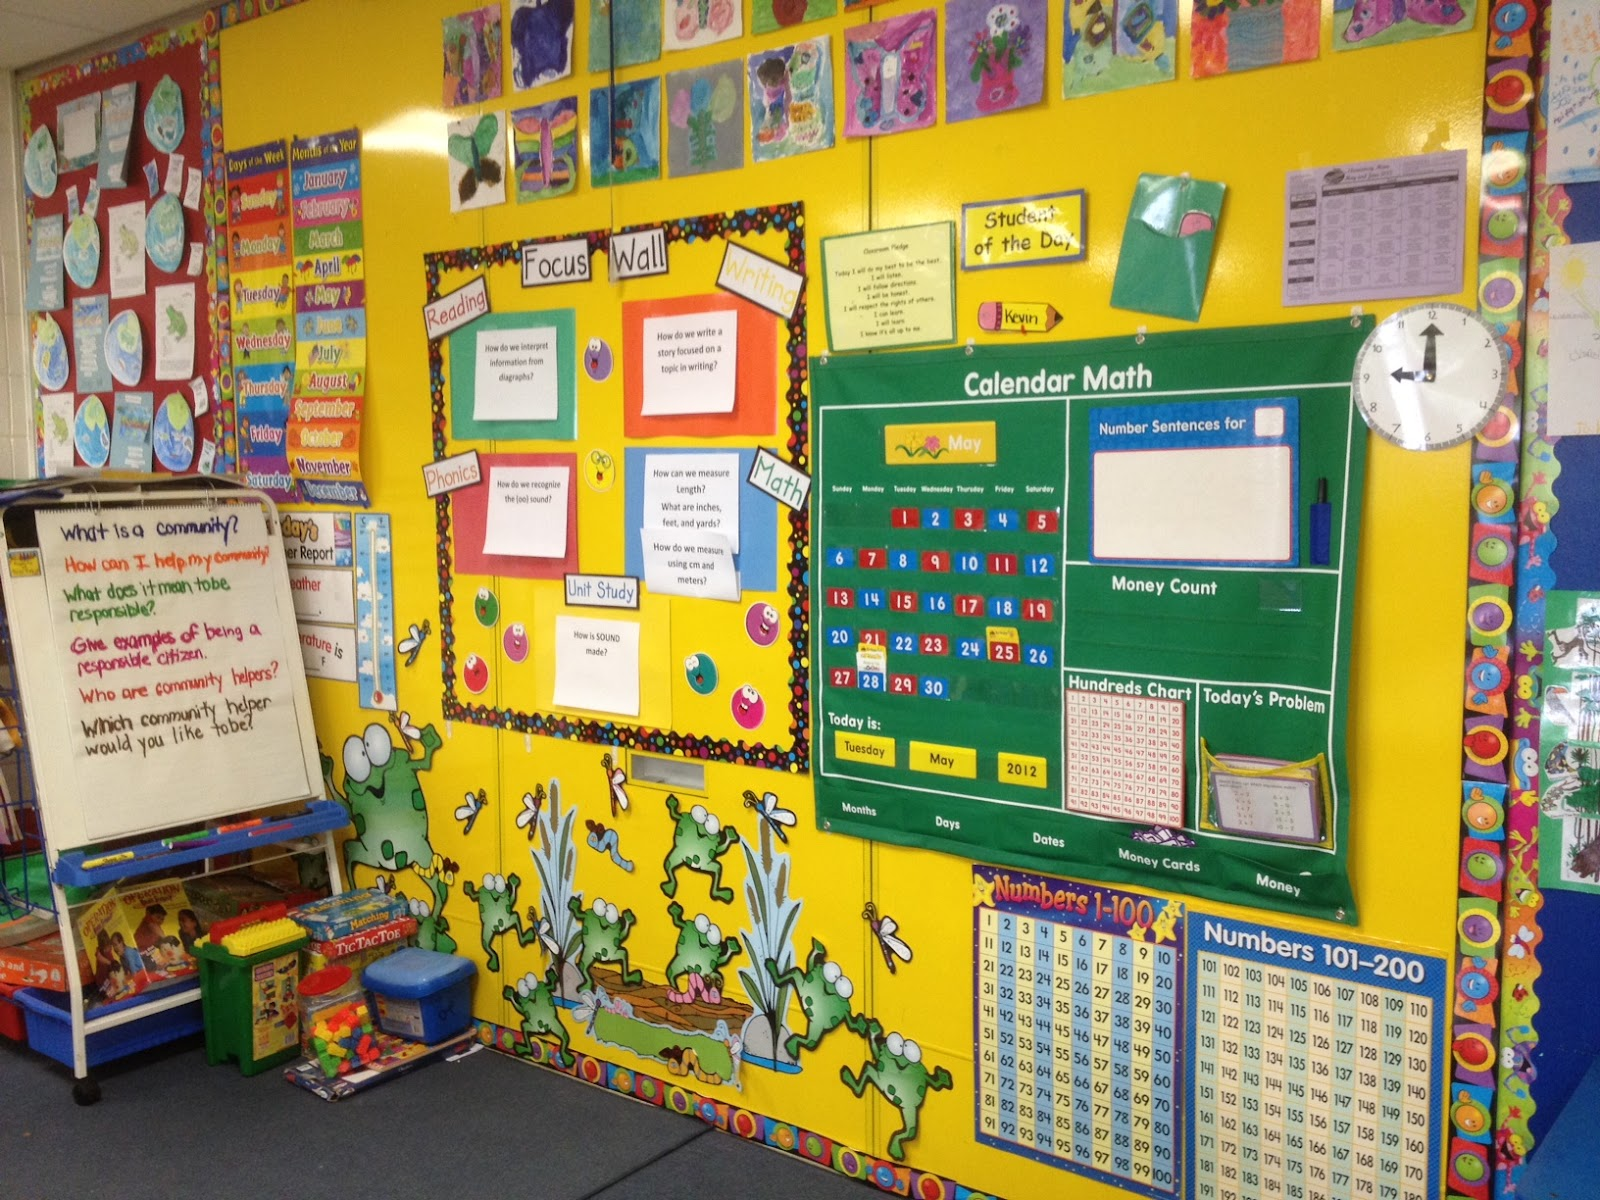 Attractive Classroom Wall Display Ideas Pictures - Art & Wall Decor ...